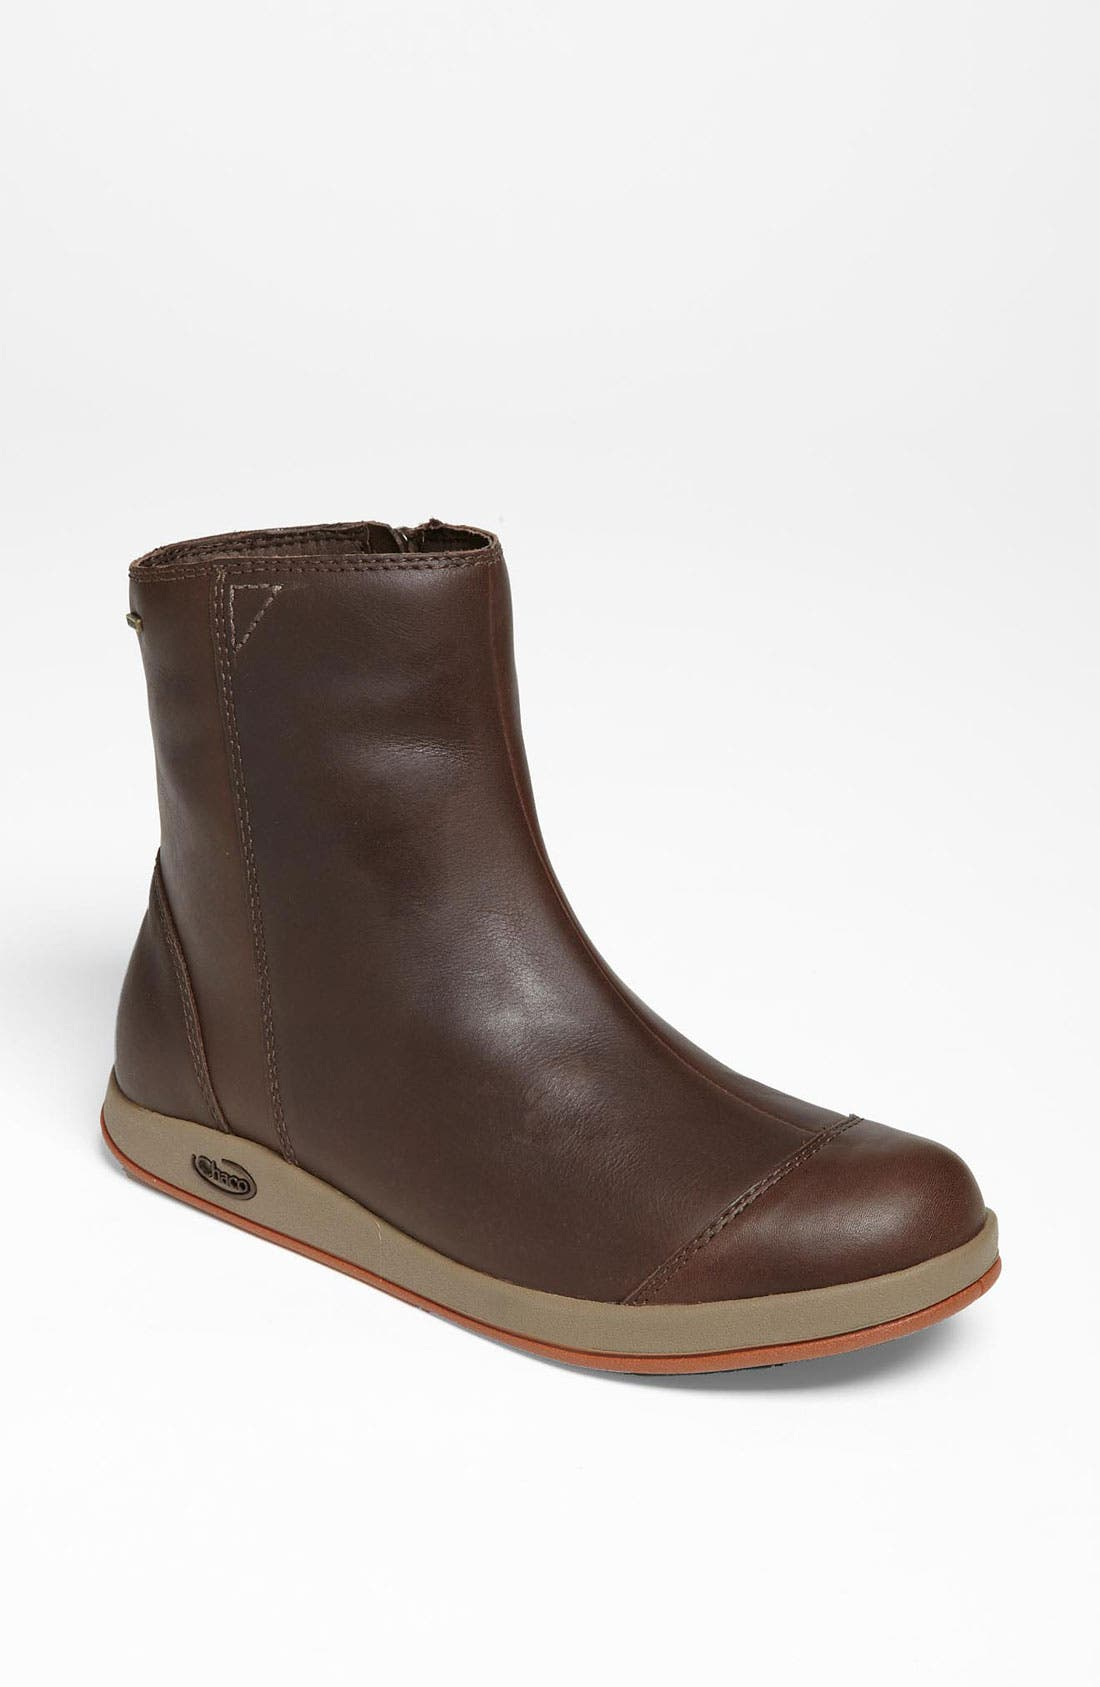 Alternate Image 1 Selected - Chaco 'Darcy' Boot